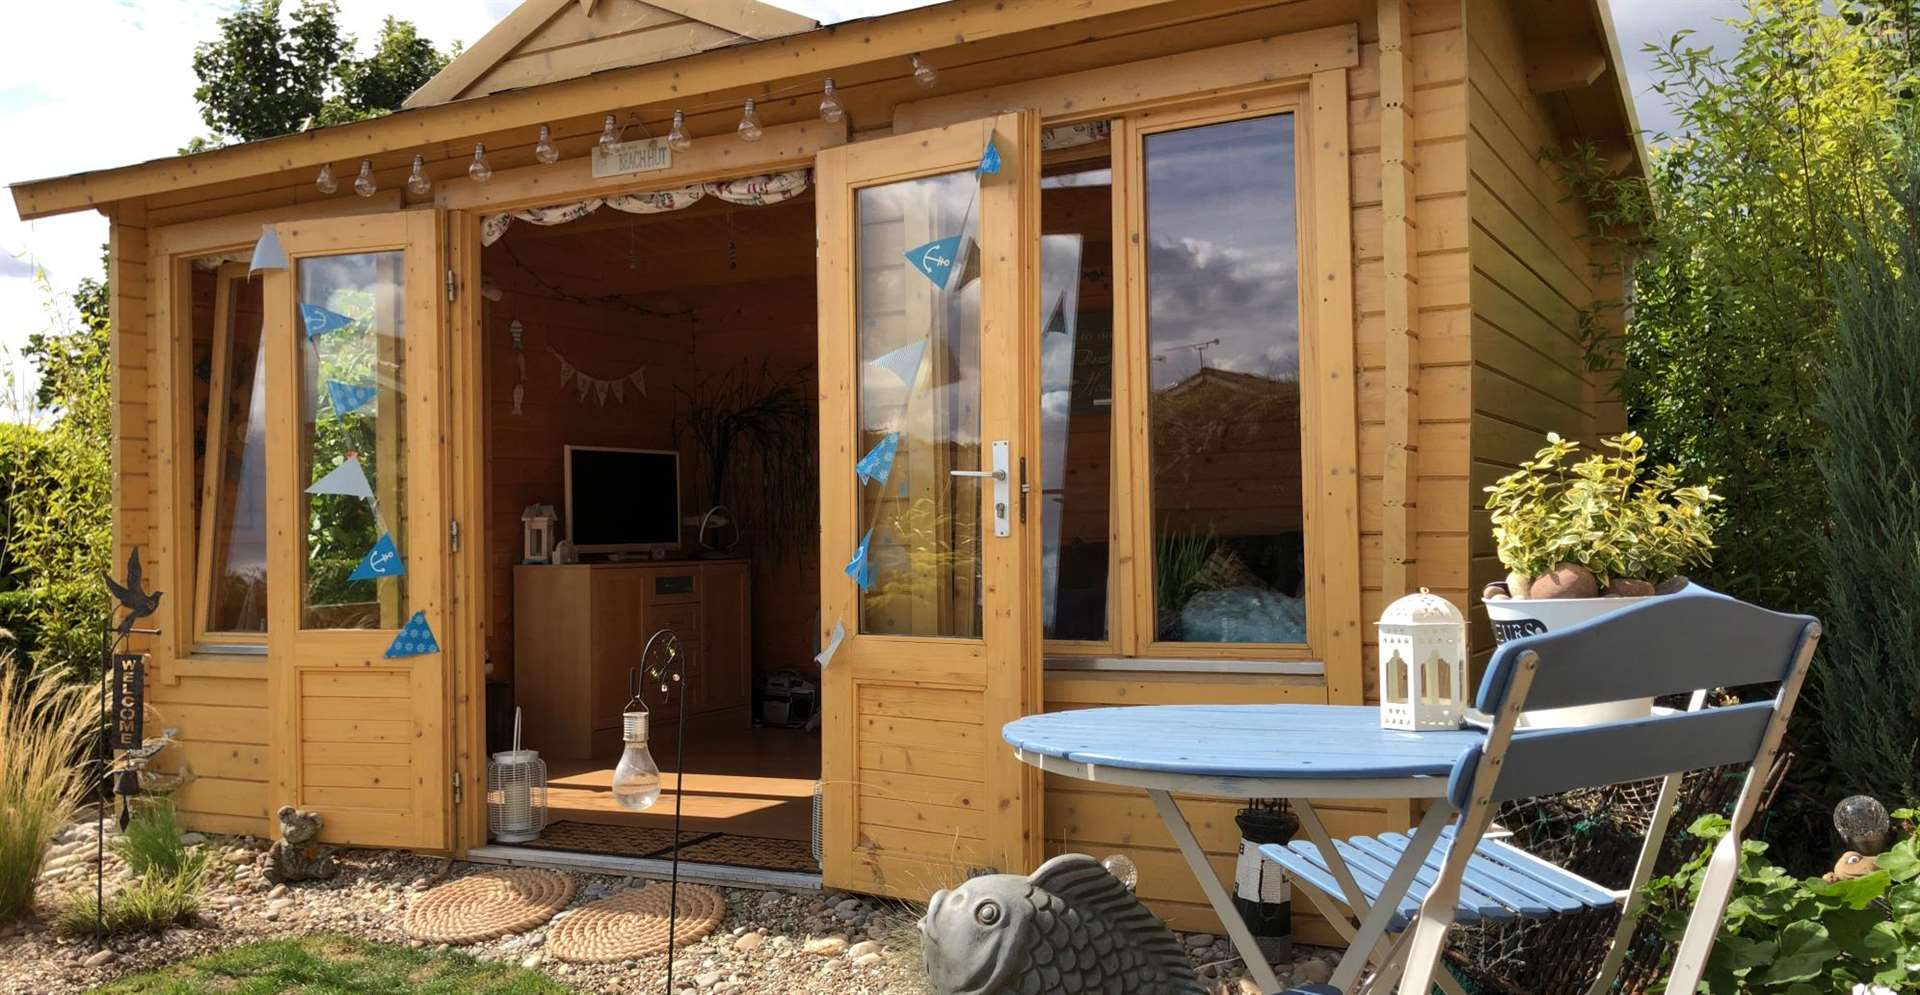 Full construction is included on all packages purchased through Johnsons Garden Buildings.